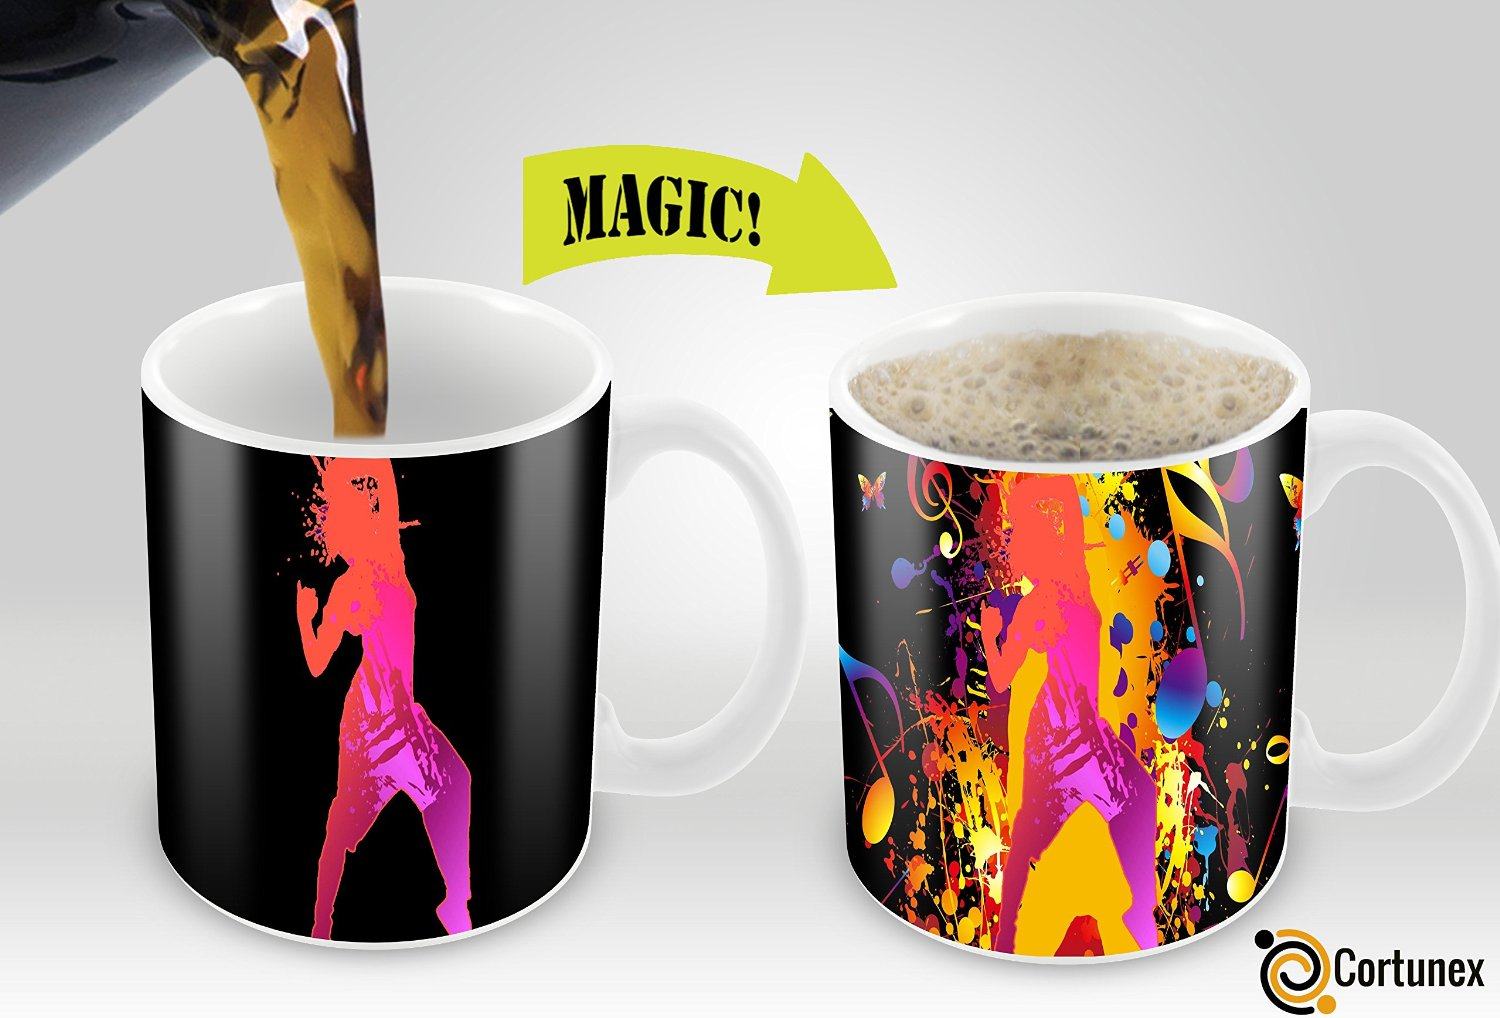 ... Variation 603161634475 Of Cortunex Magic Mugs Amazing New Heat Sensitive Color Changing Coffee Mug Good Unique ... & Cortunex | Magic Mugs | Amazing New Heat Sensitive Color Changing ...